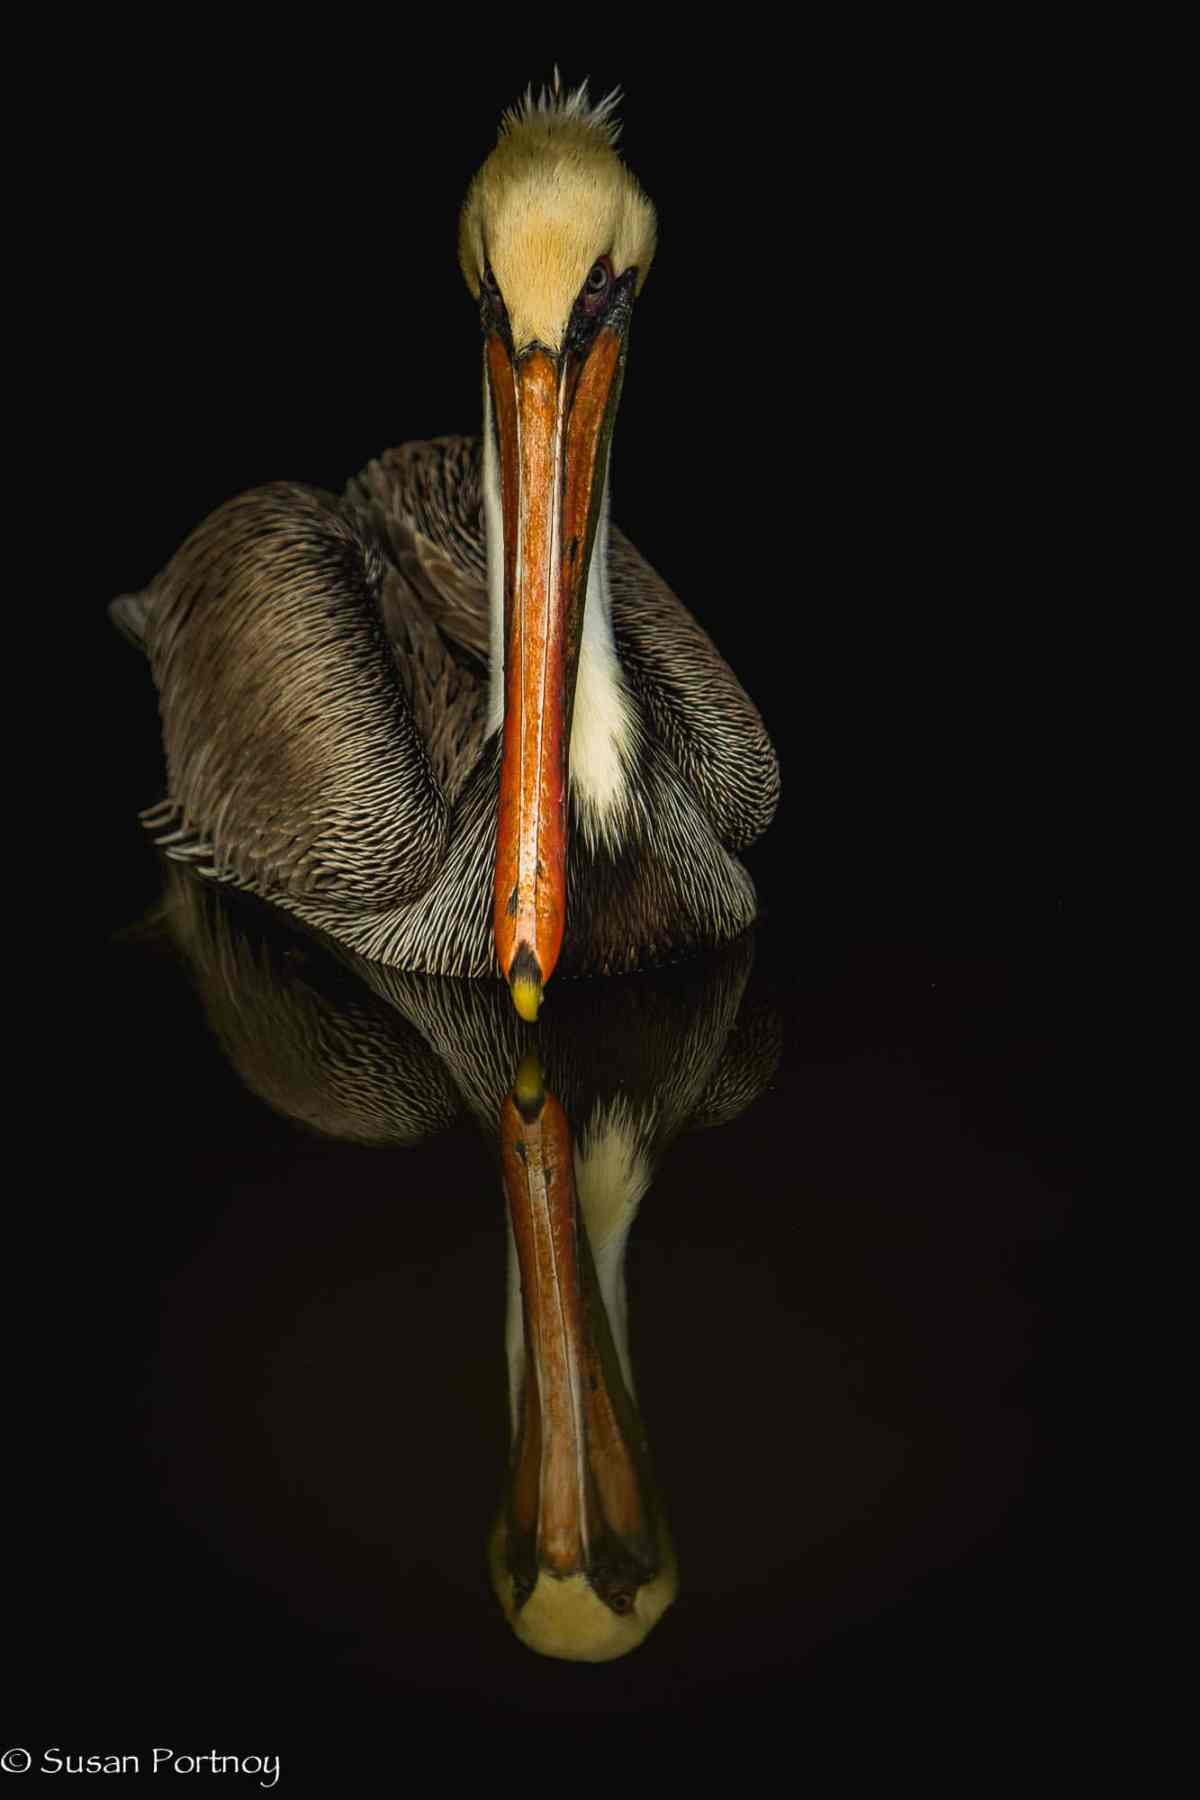 Pelican and pelican reflection